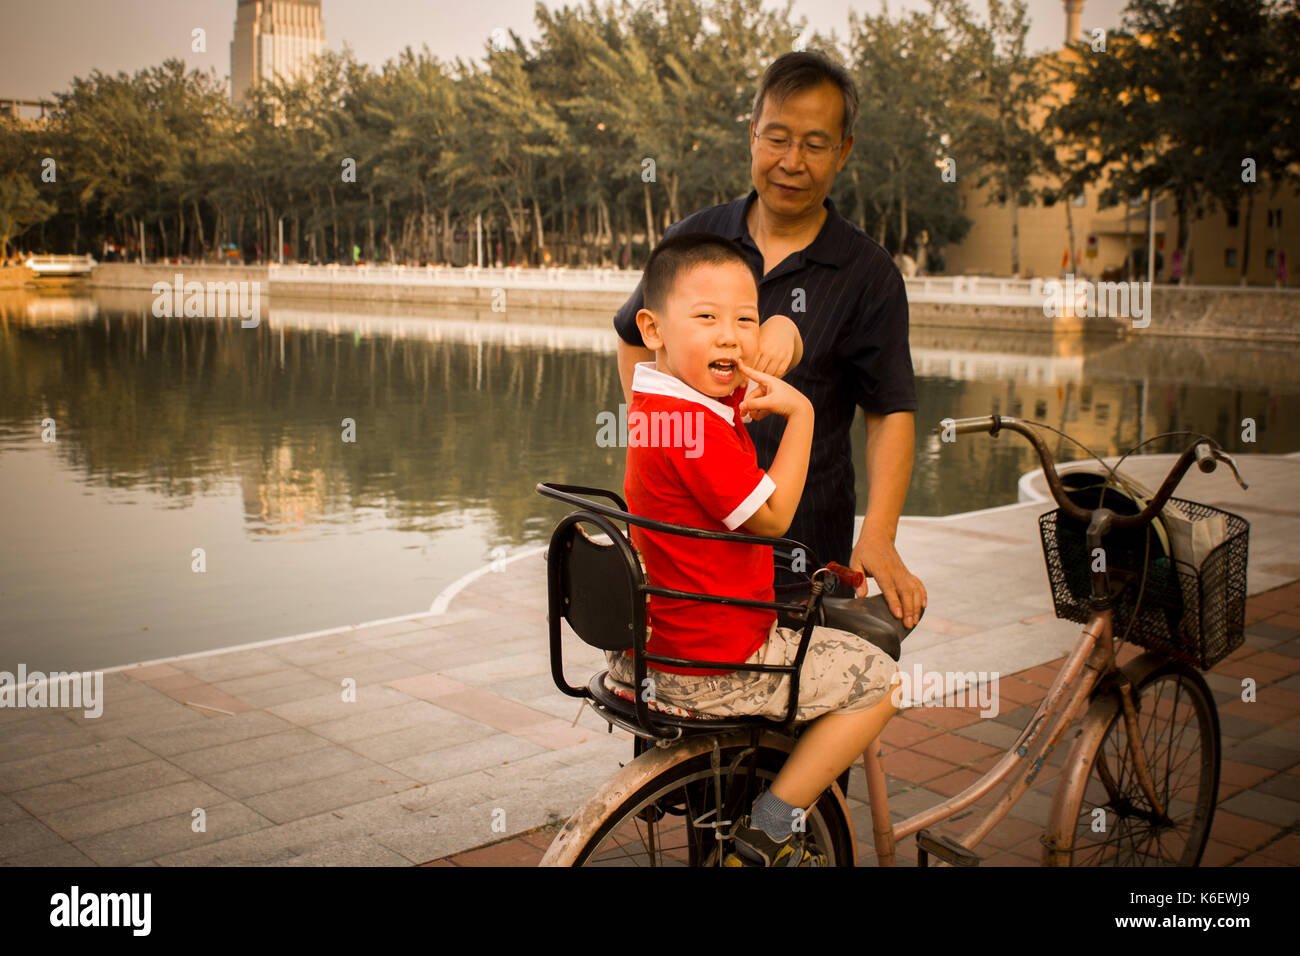 yinchuan senior singles If you're part of that population of single seniors, meeting and dating someone  may seem difficult but americans 55 and older are more likely to.